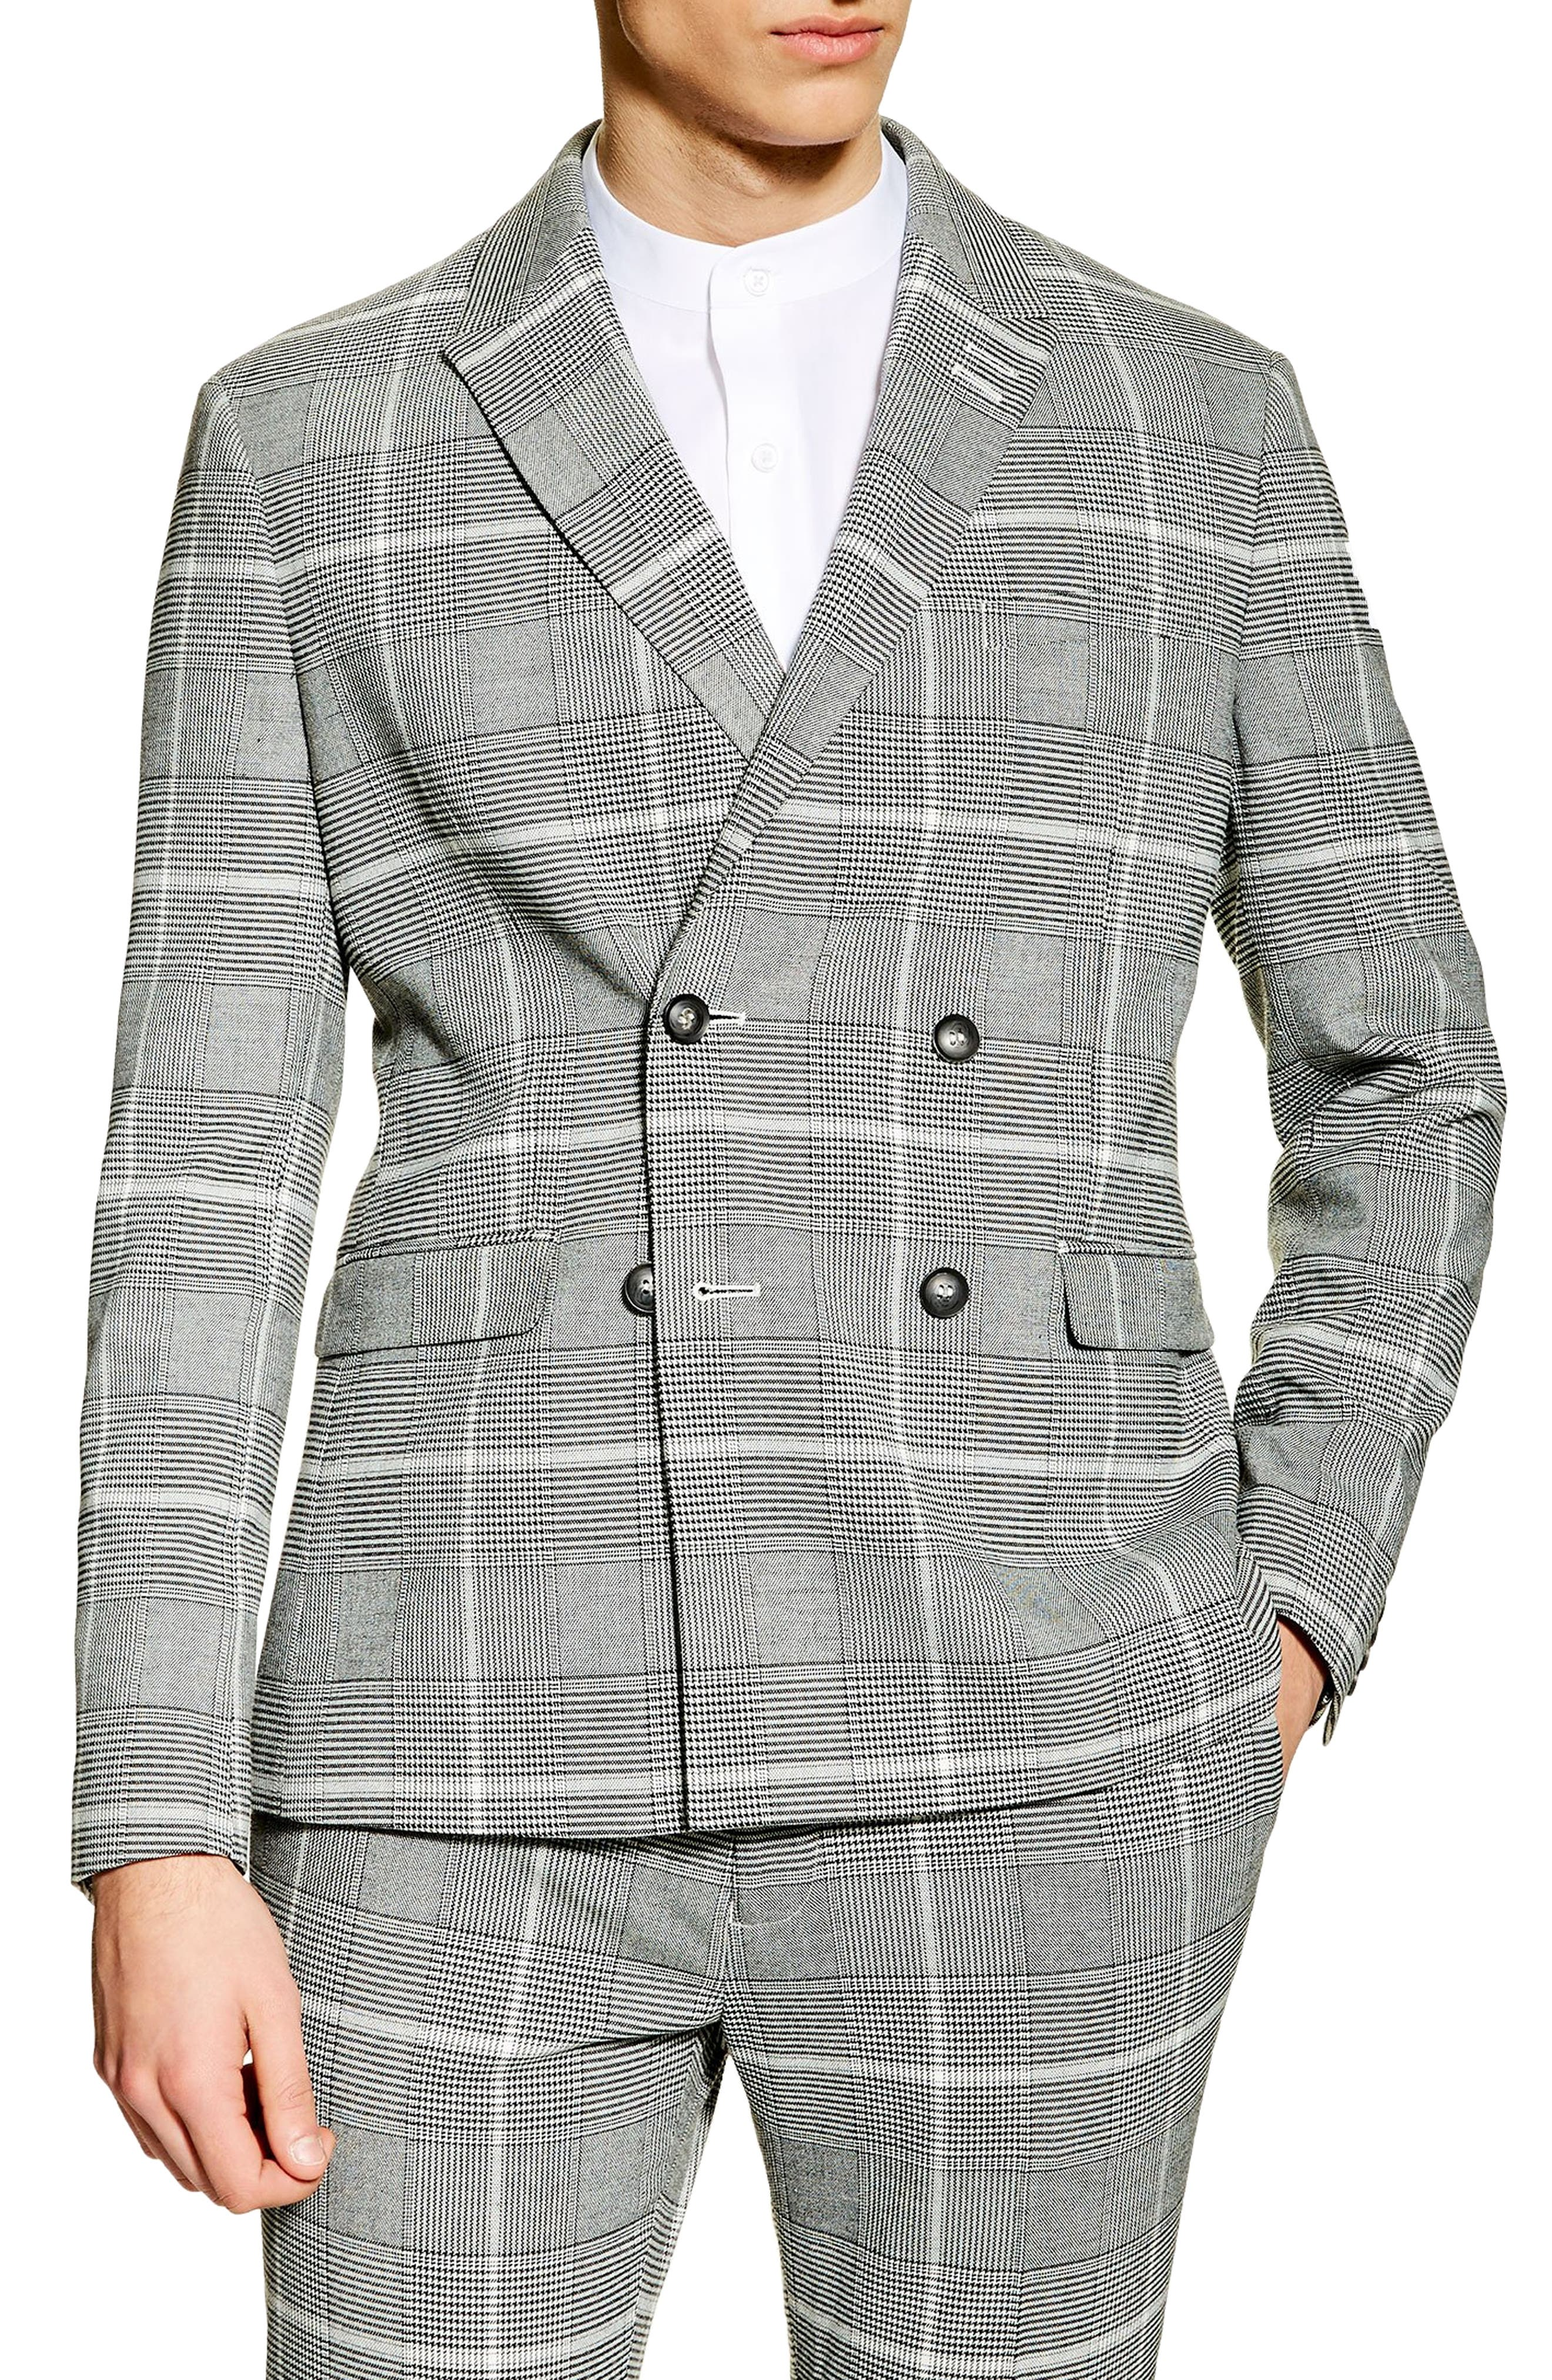 TOPMAN, Skinny Fit Check Suit Jacket, Main thumbnail 1, color, 020